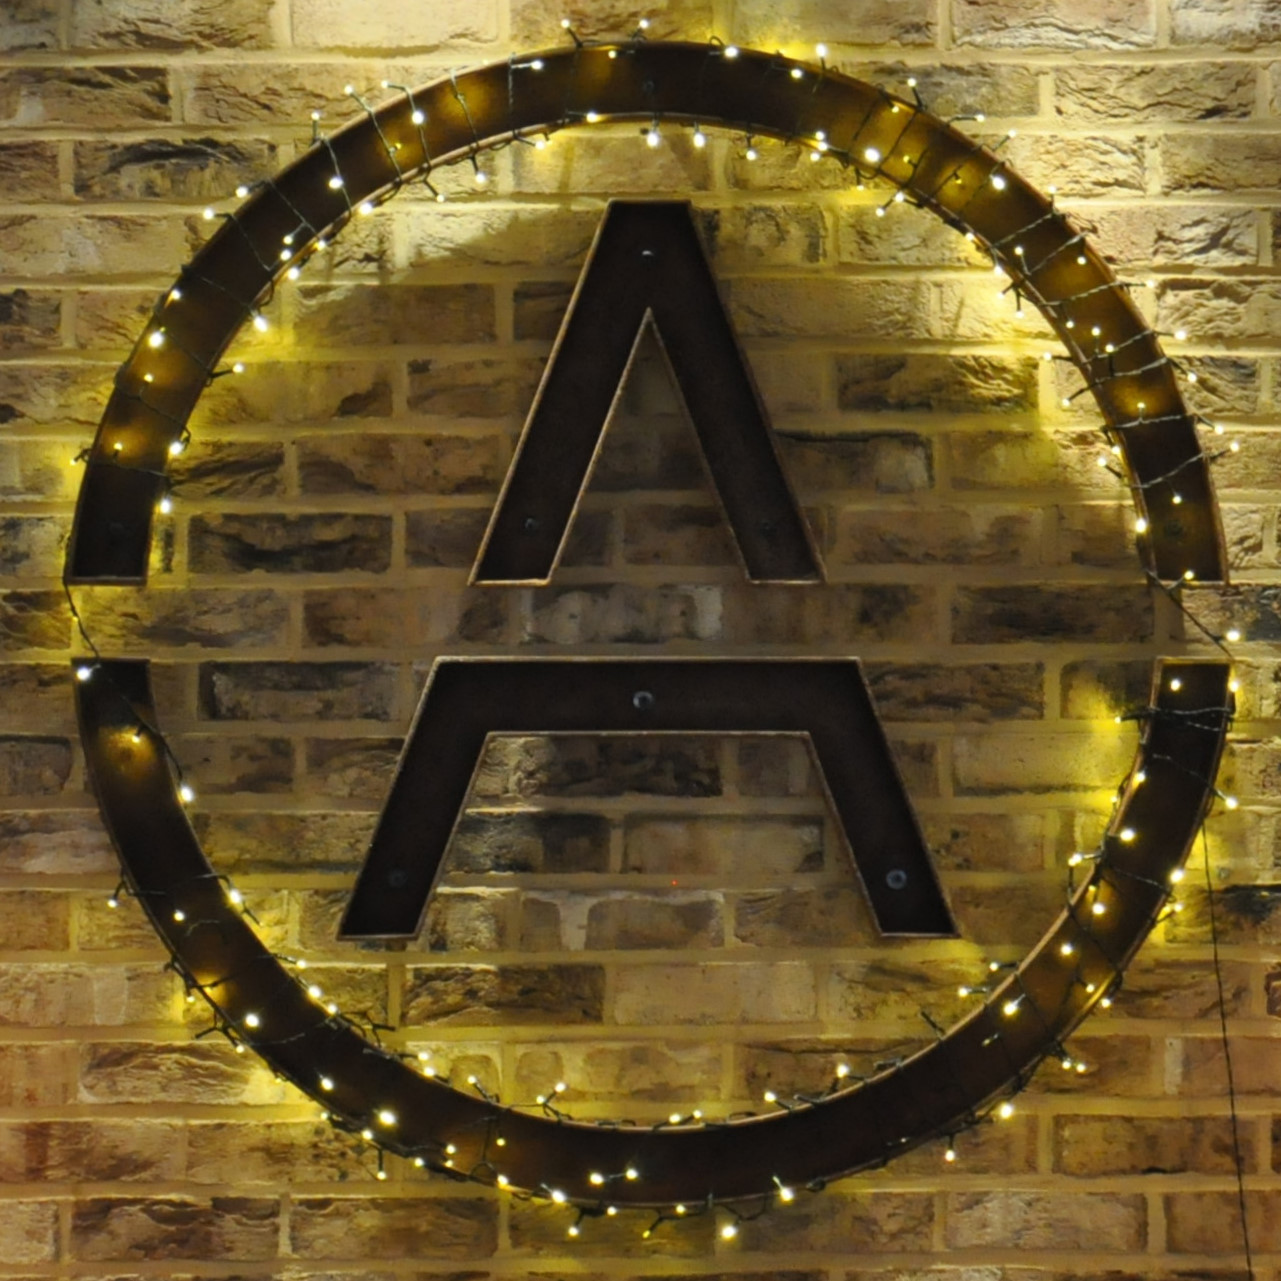 The letter A in a circle, mounted on a exposed brick wall. The circle is wrapped in fairy lights.